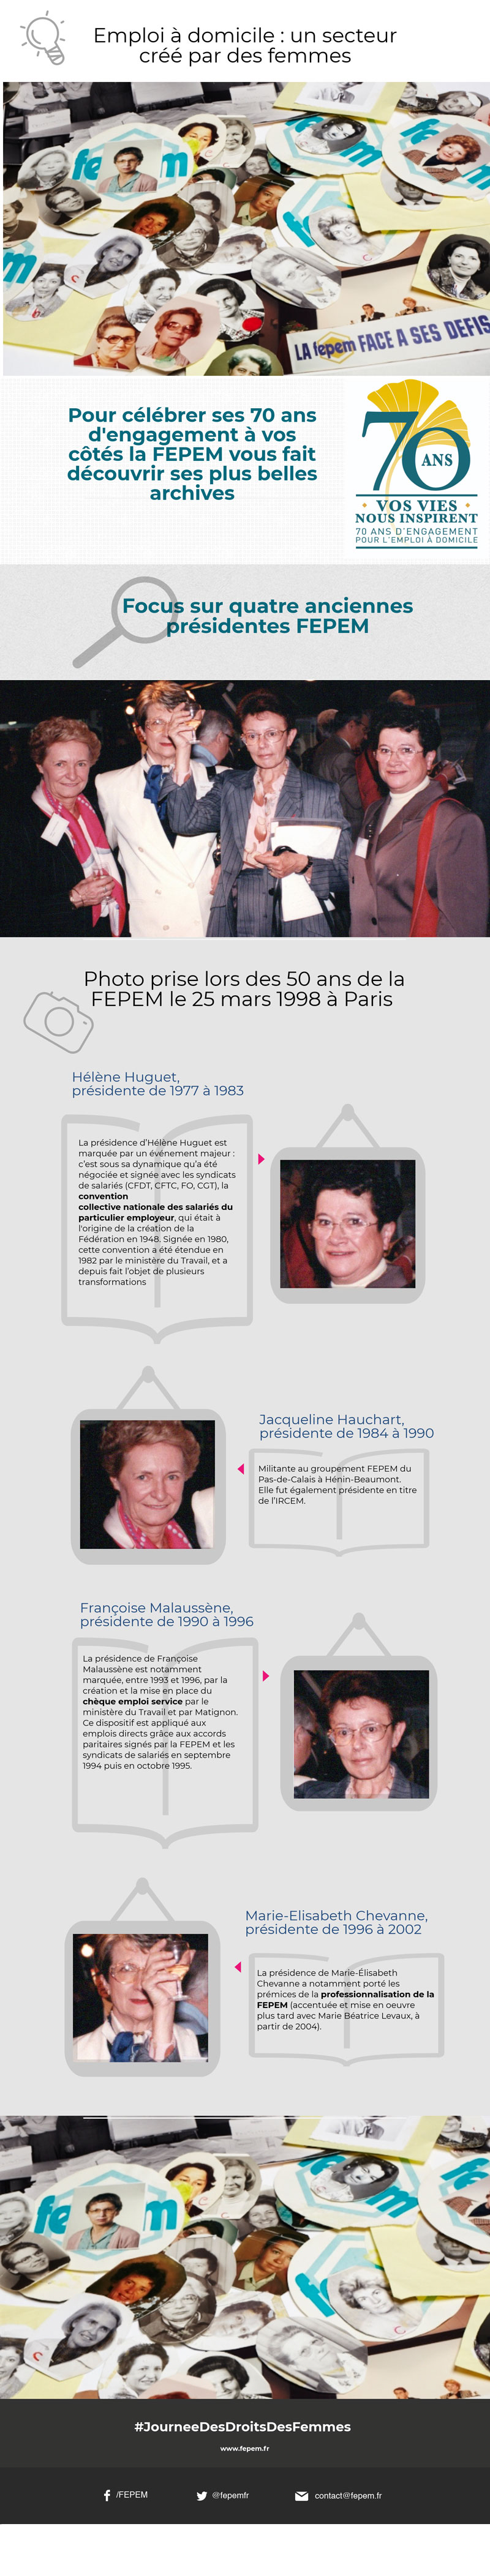 Infographie-vf